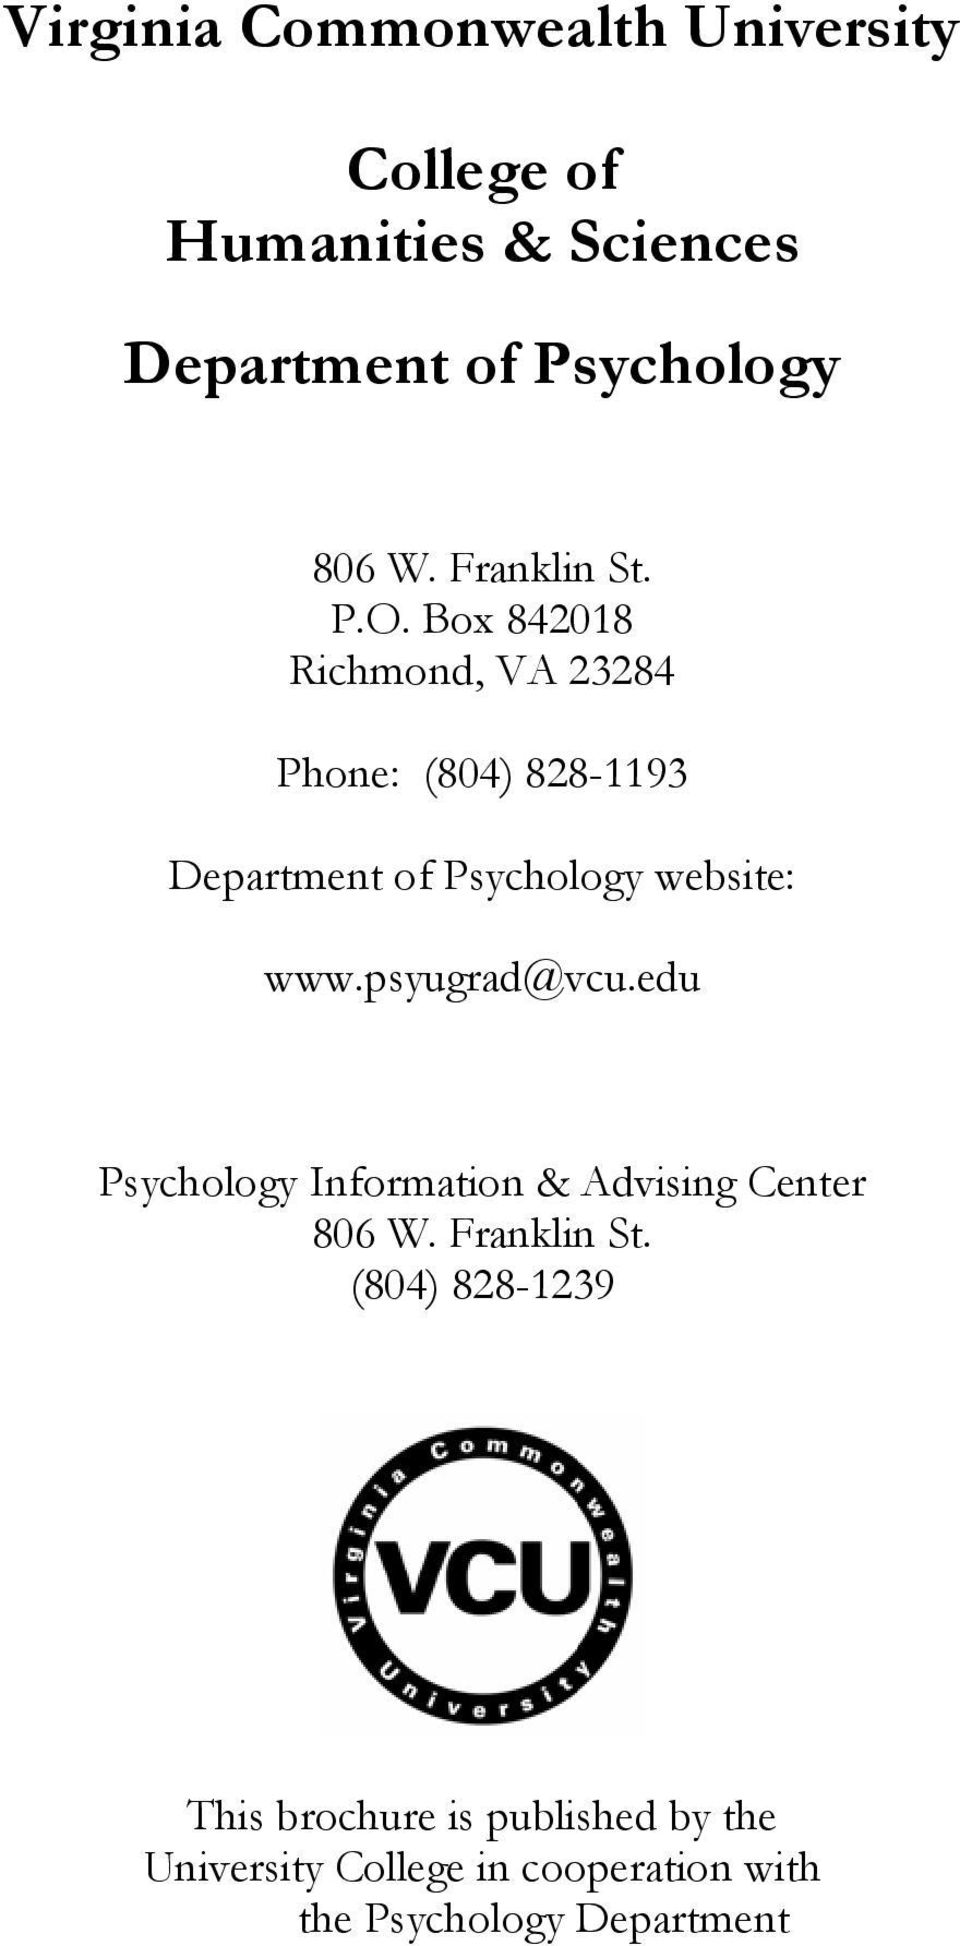 Box 842018 Richmond, VA 23284 Phone: (804) 828-1193 Department of Psychology website: www.